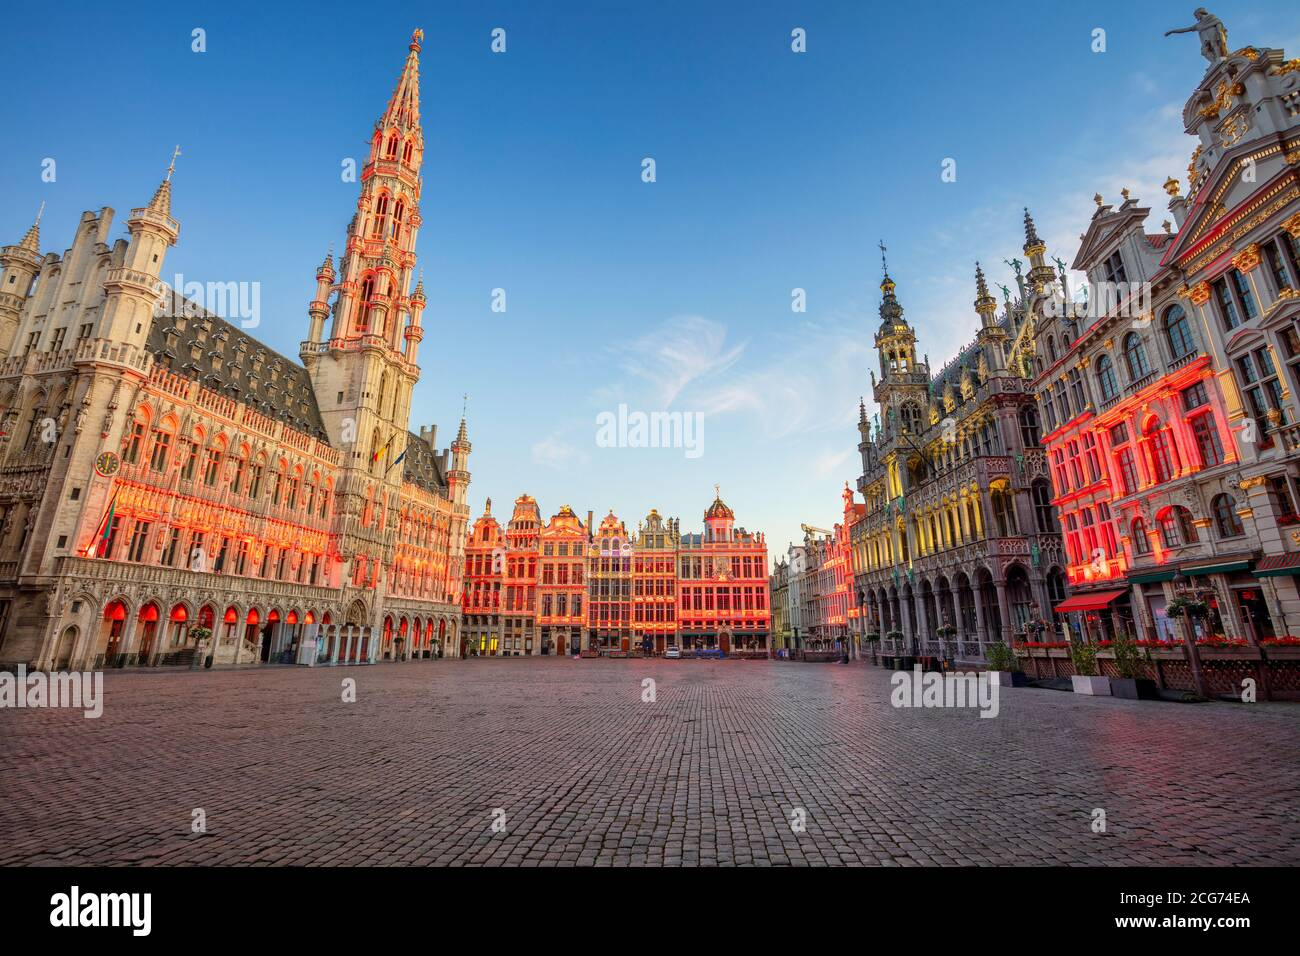 Brussels, Belgium. Cityscape image of Brussels with Grand Place at sunrise. Stock Photo